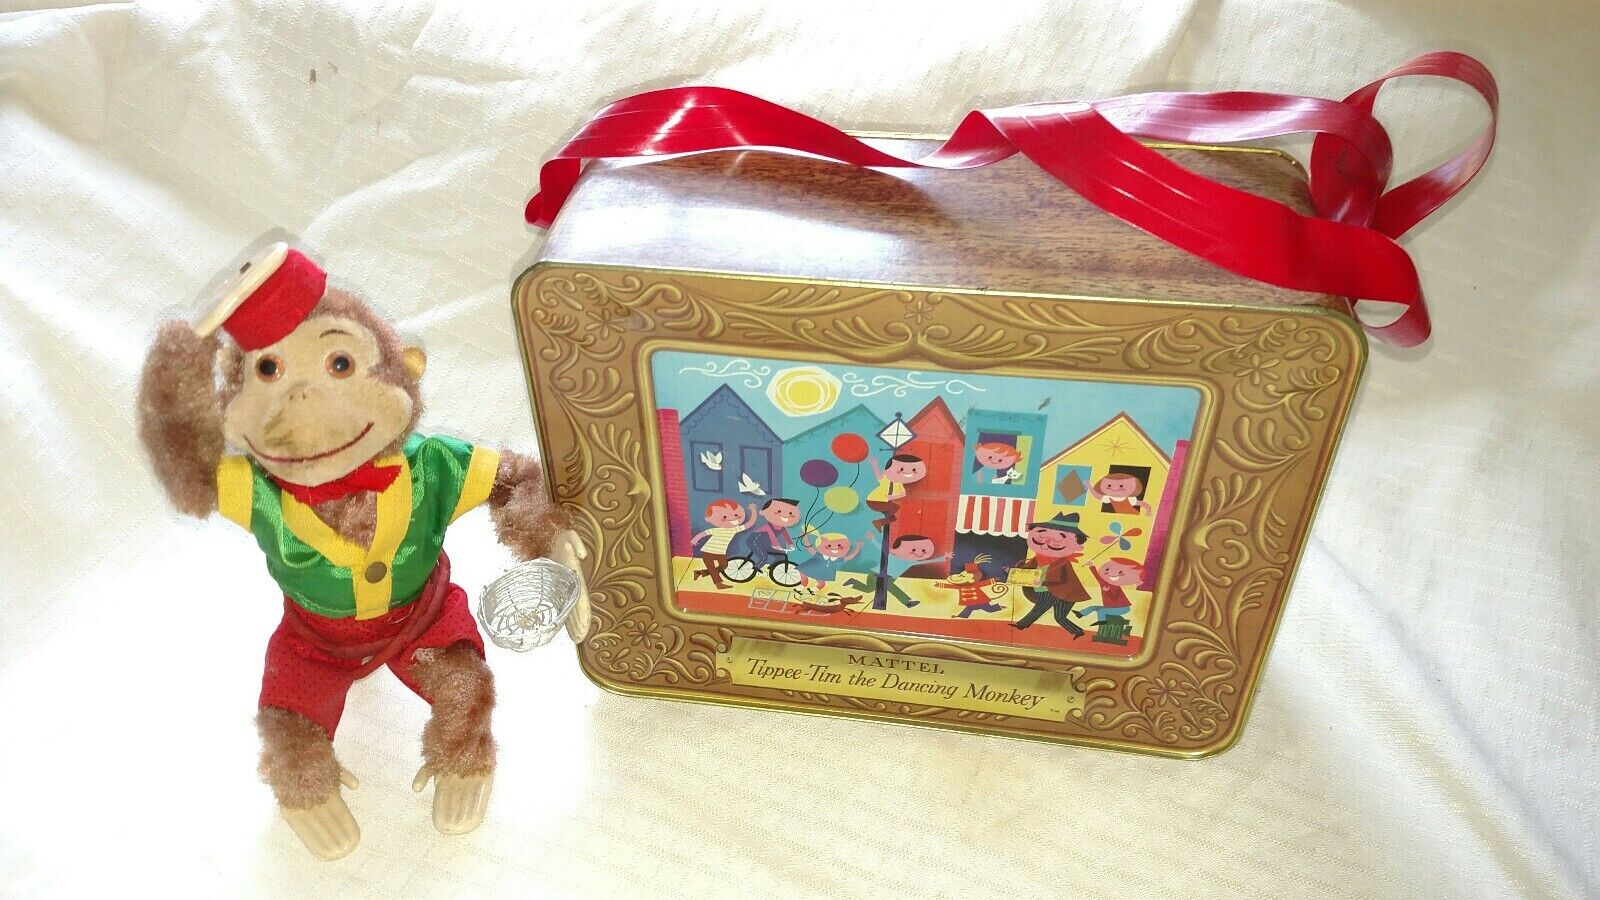 Vintage 1958 MATTEL Tippee Tim Metal Organ Grinder Music Box & Dancing Monkey